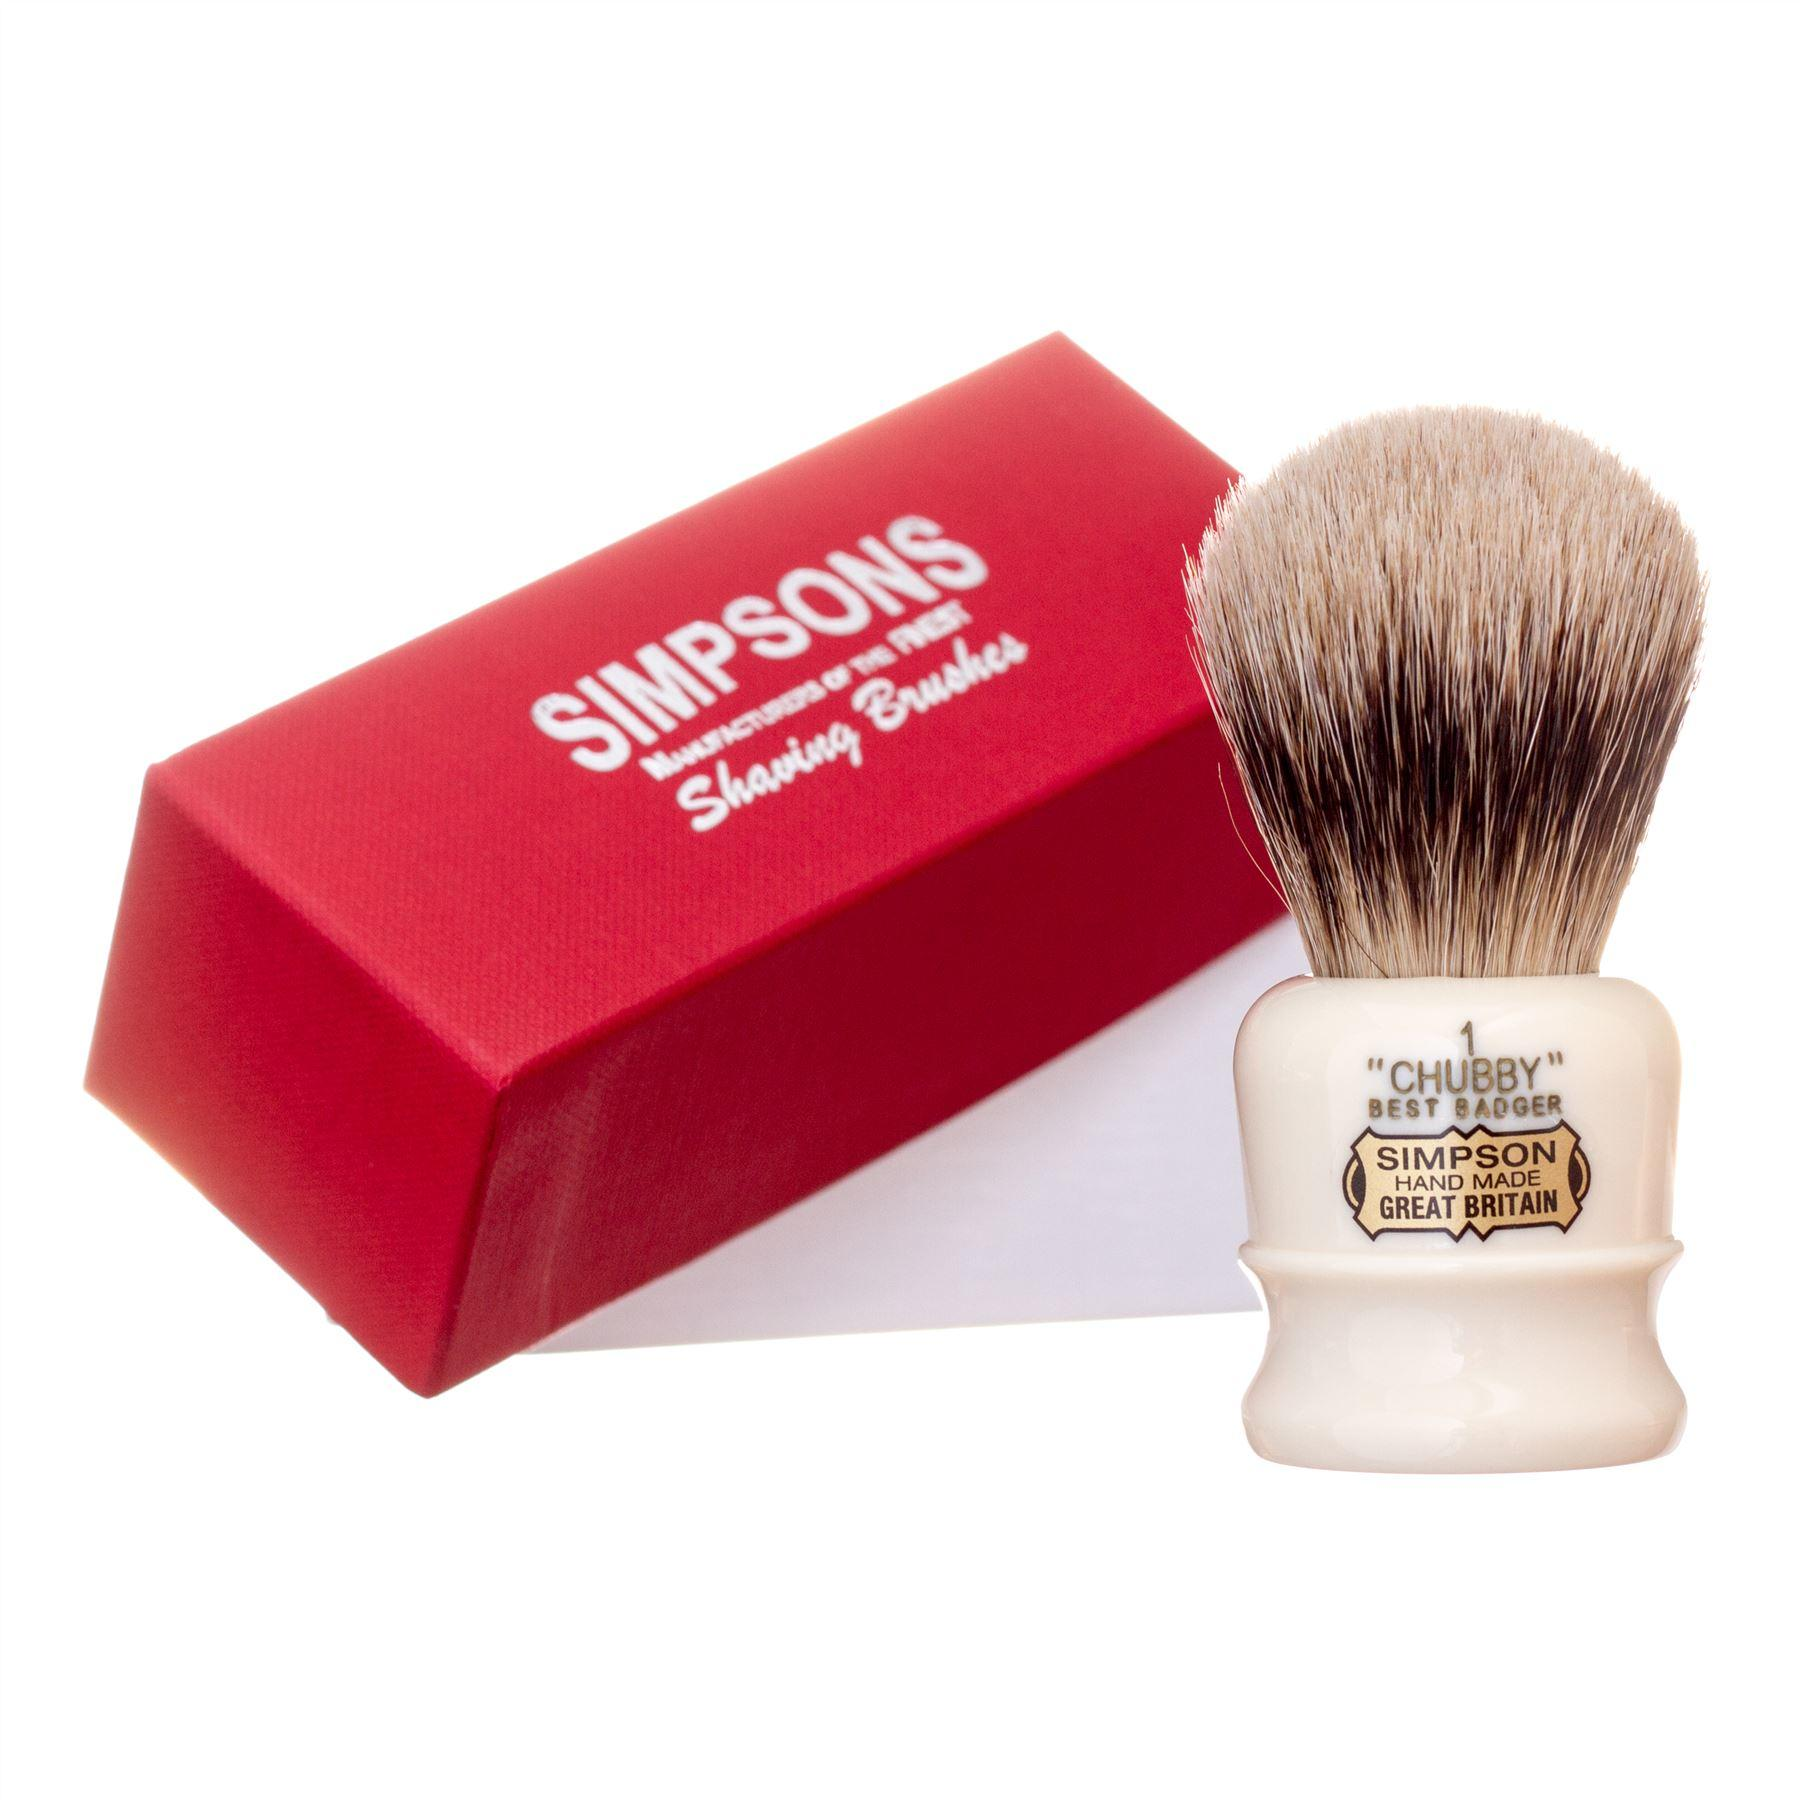 Simpsons Chubby CH1 Best Badger Hair Shaving Brush